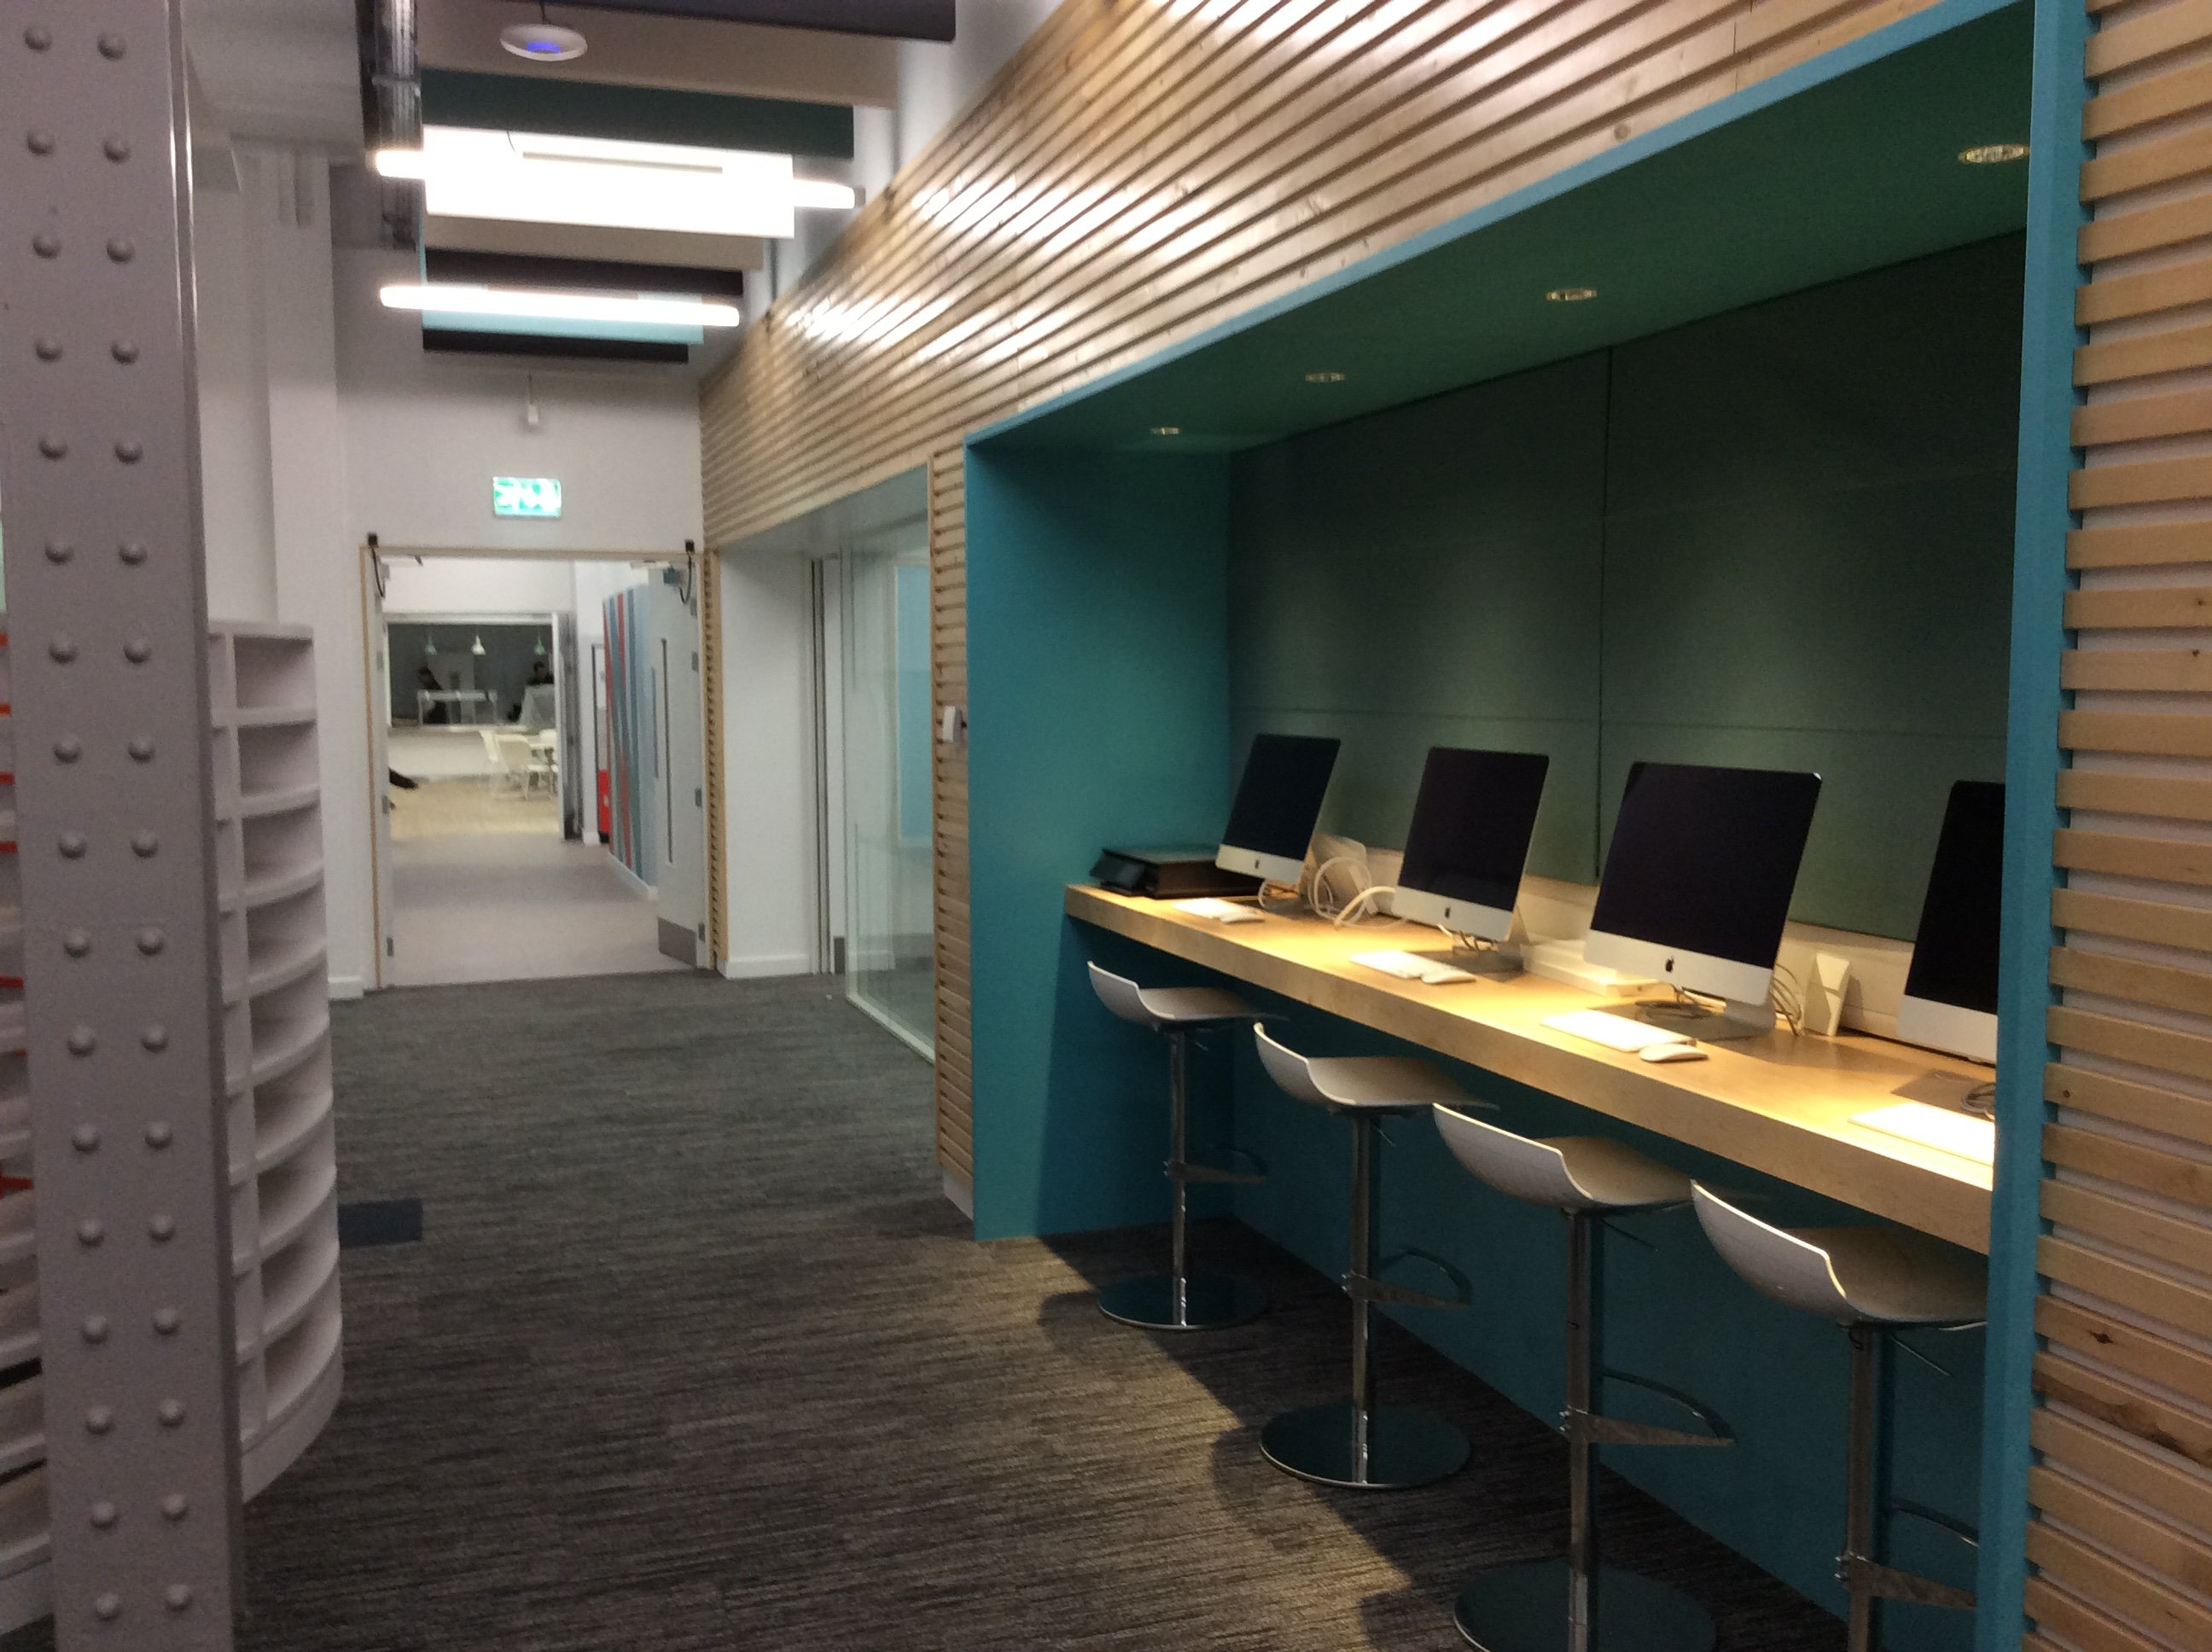 Steelcase Solutions supports new college